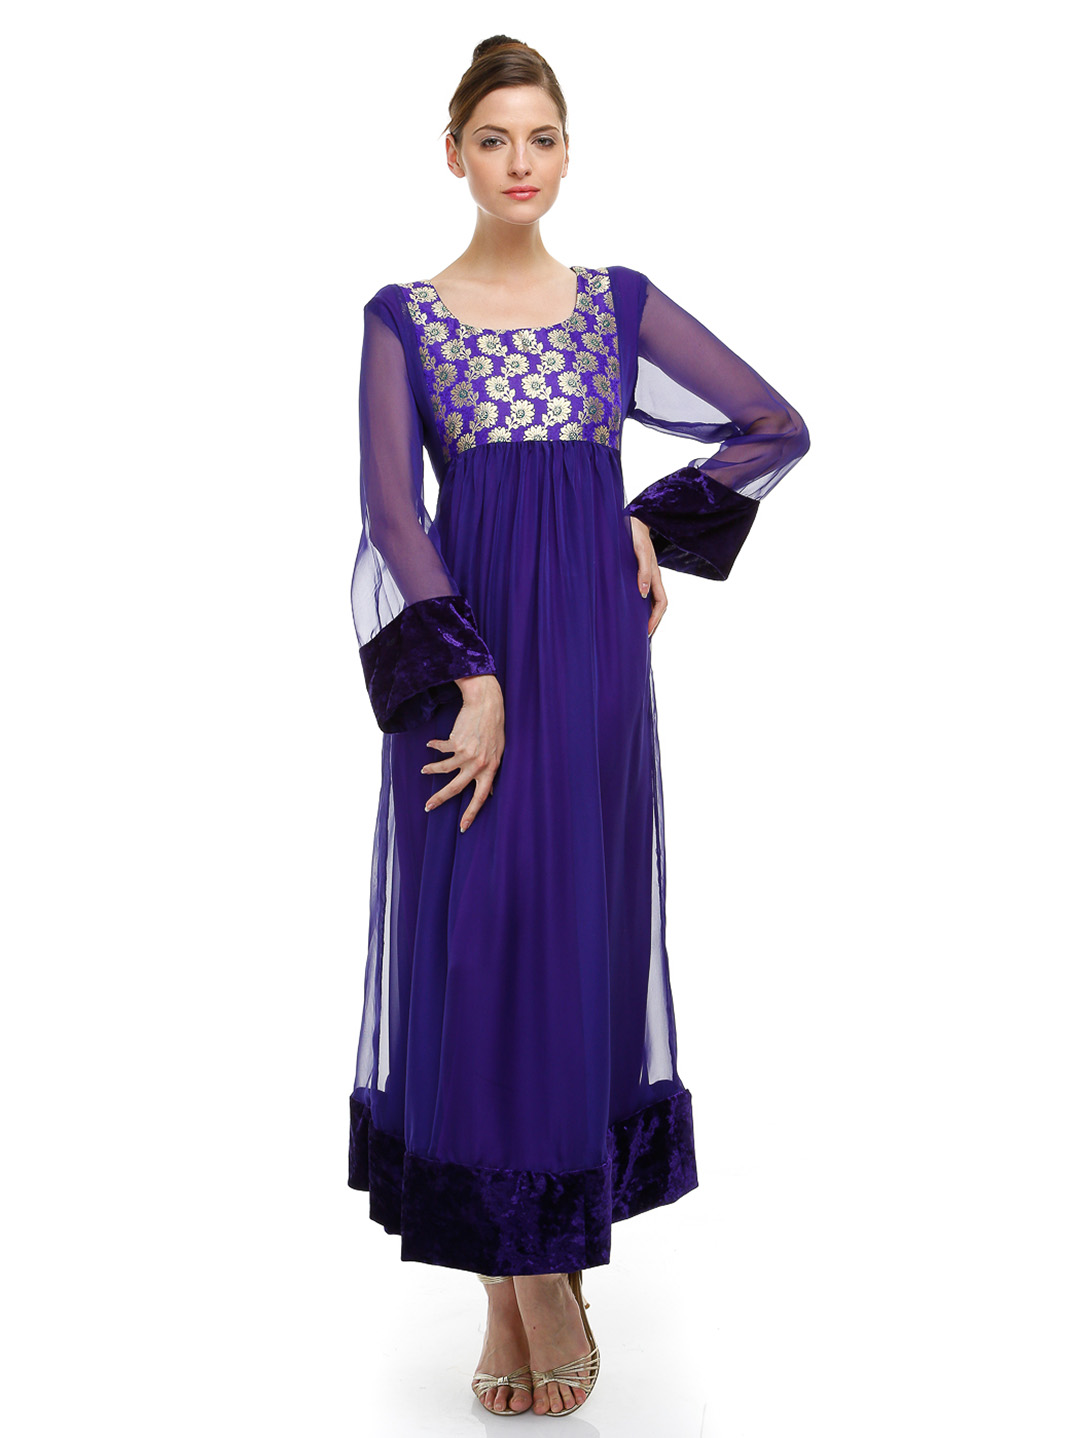 New Party Wear Dresses Long Frock Fashion 2013 2014 Asian Clothing